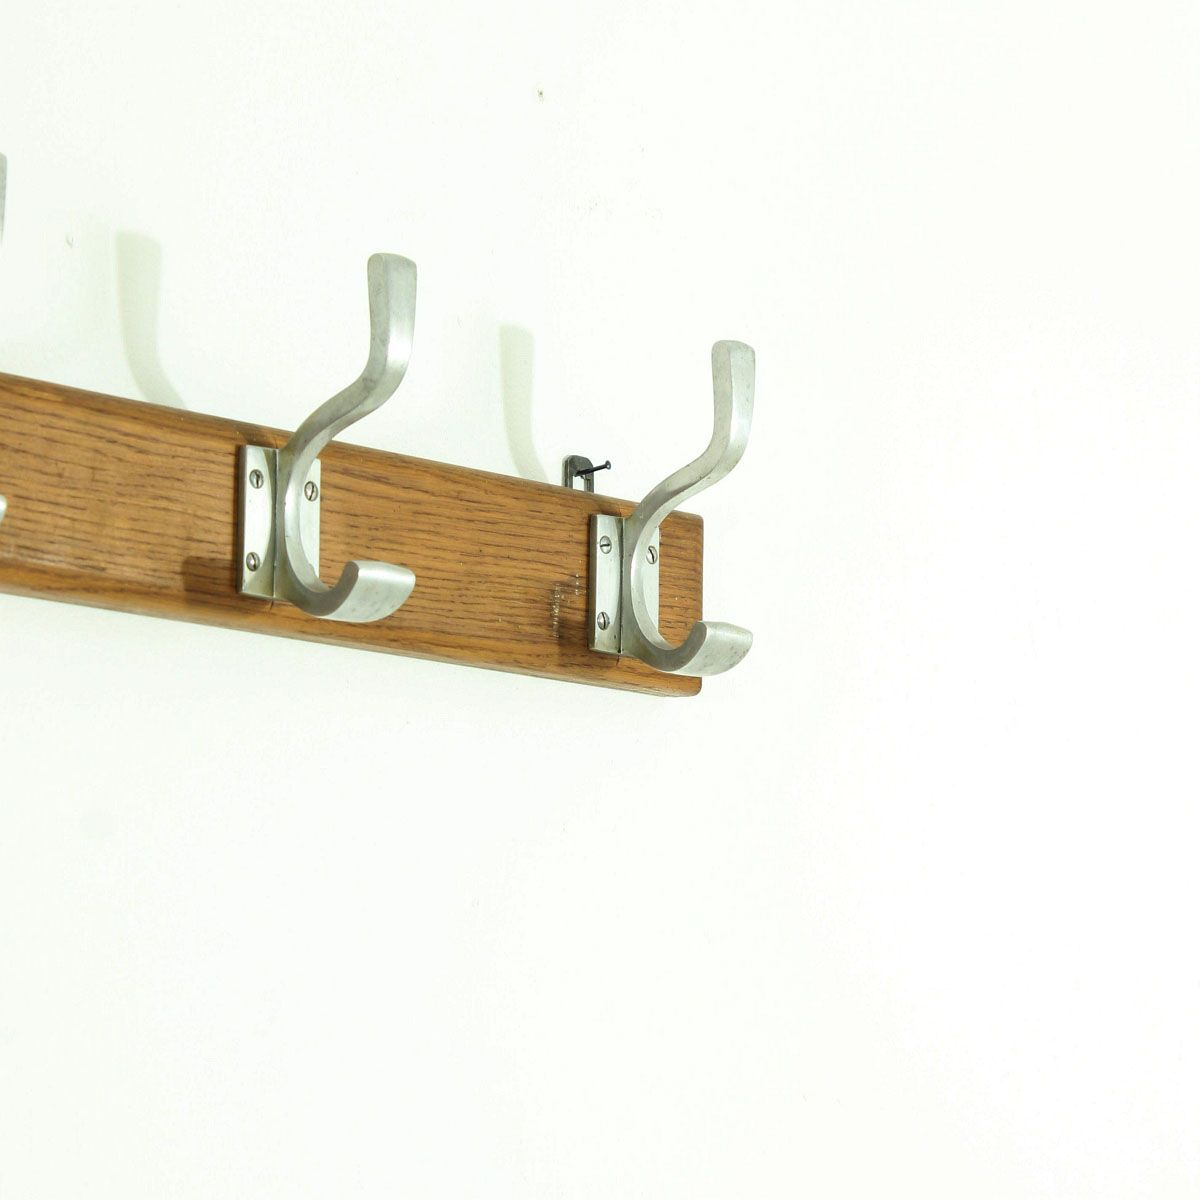 Art deco wall mounted coat rack 1930s for sale at pamono for Artistic coat hooks